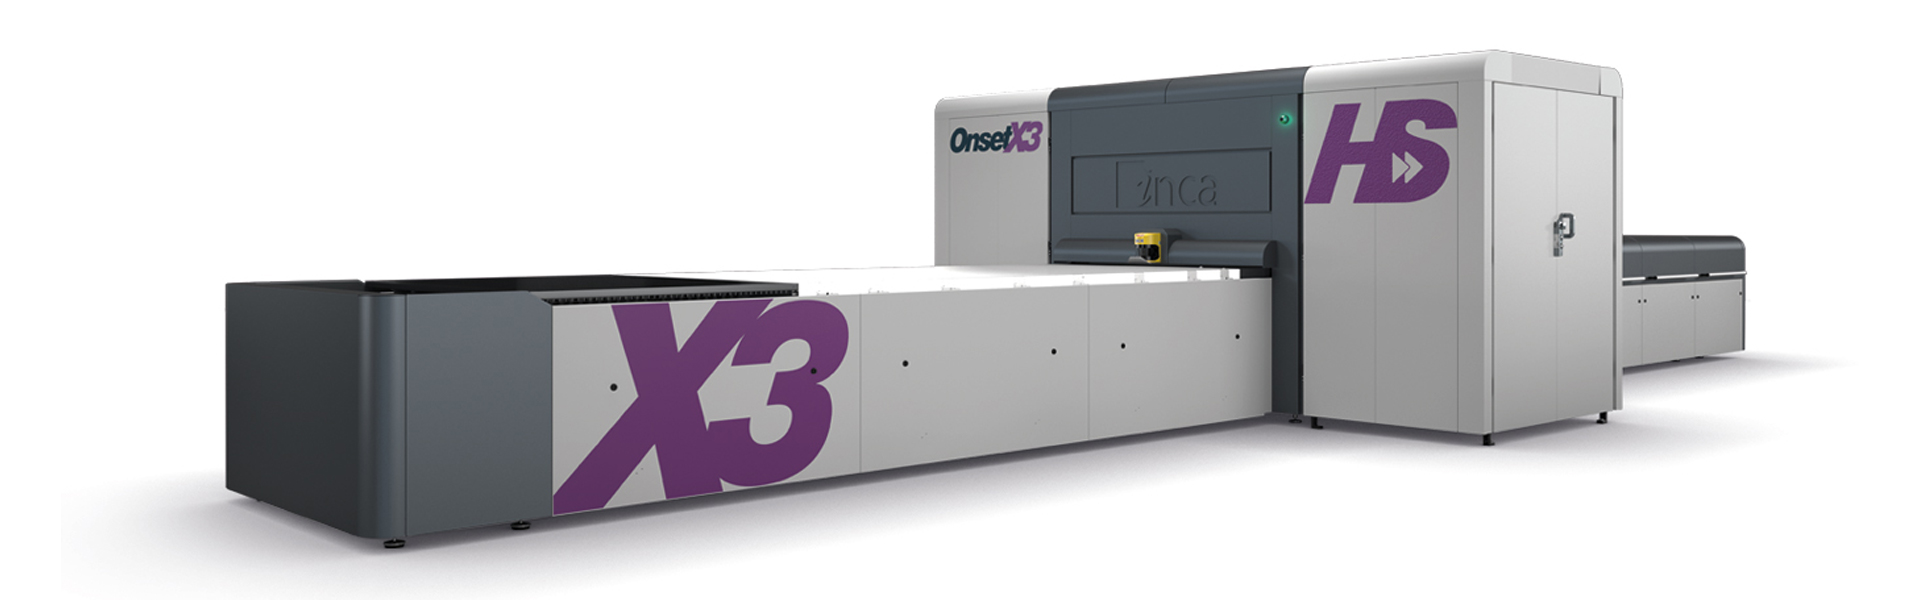 [photo] Large, front-angled view of Onset X Series UV flatbed printing system